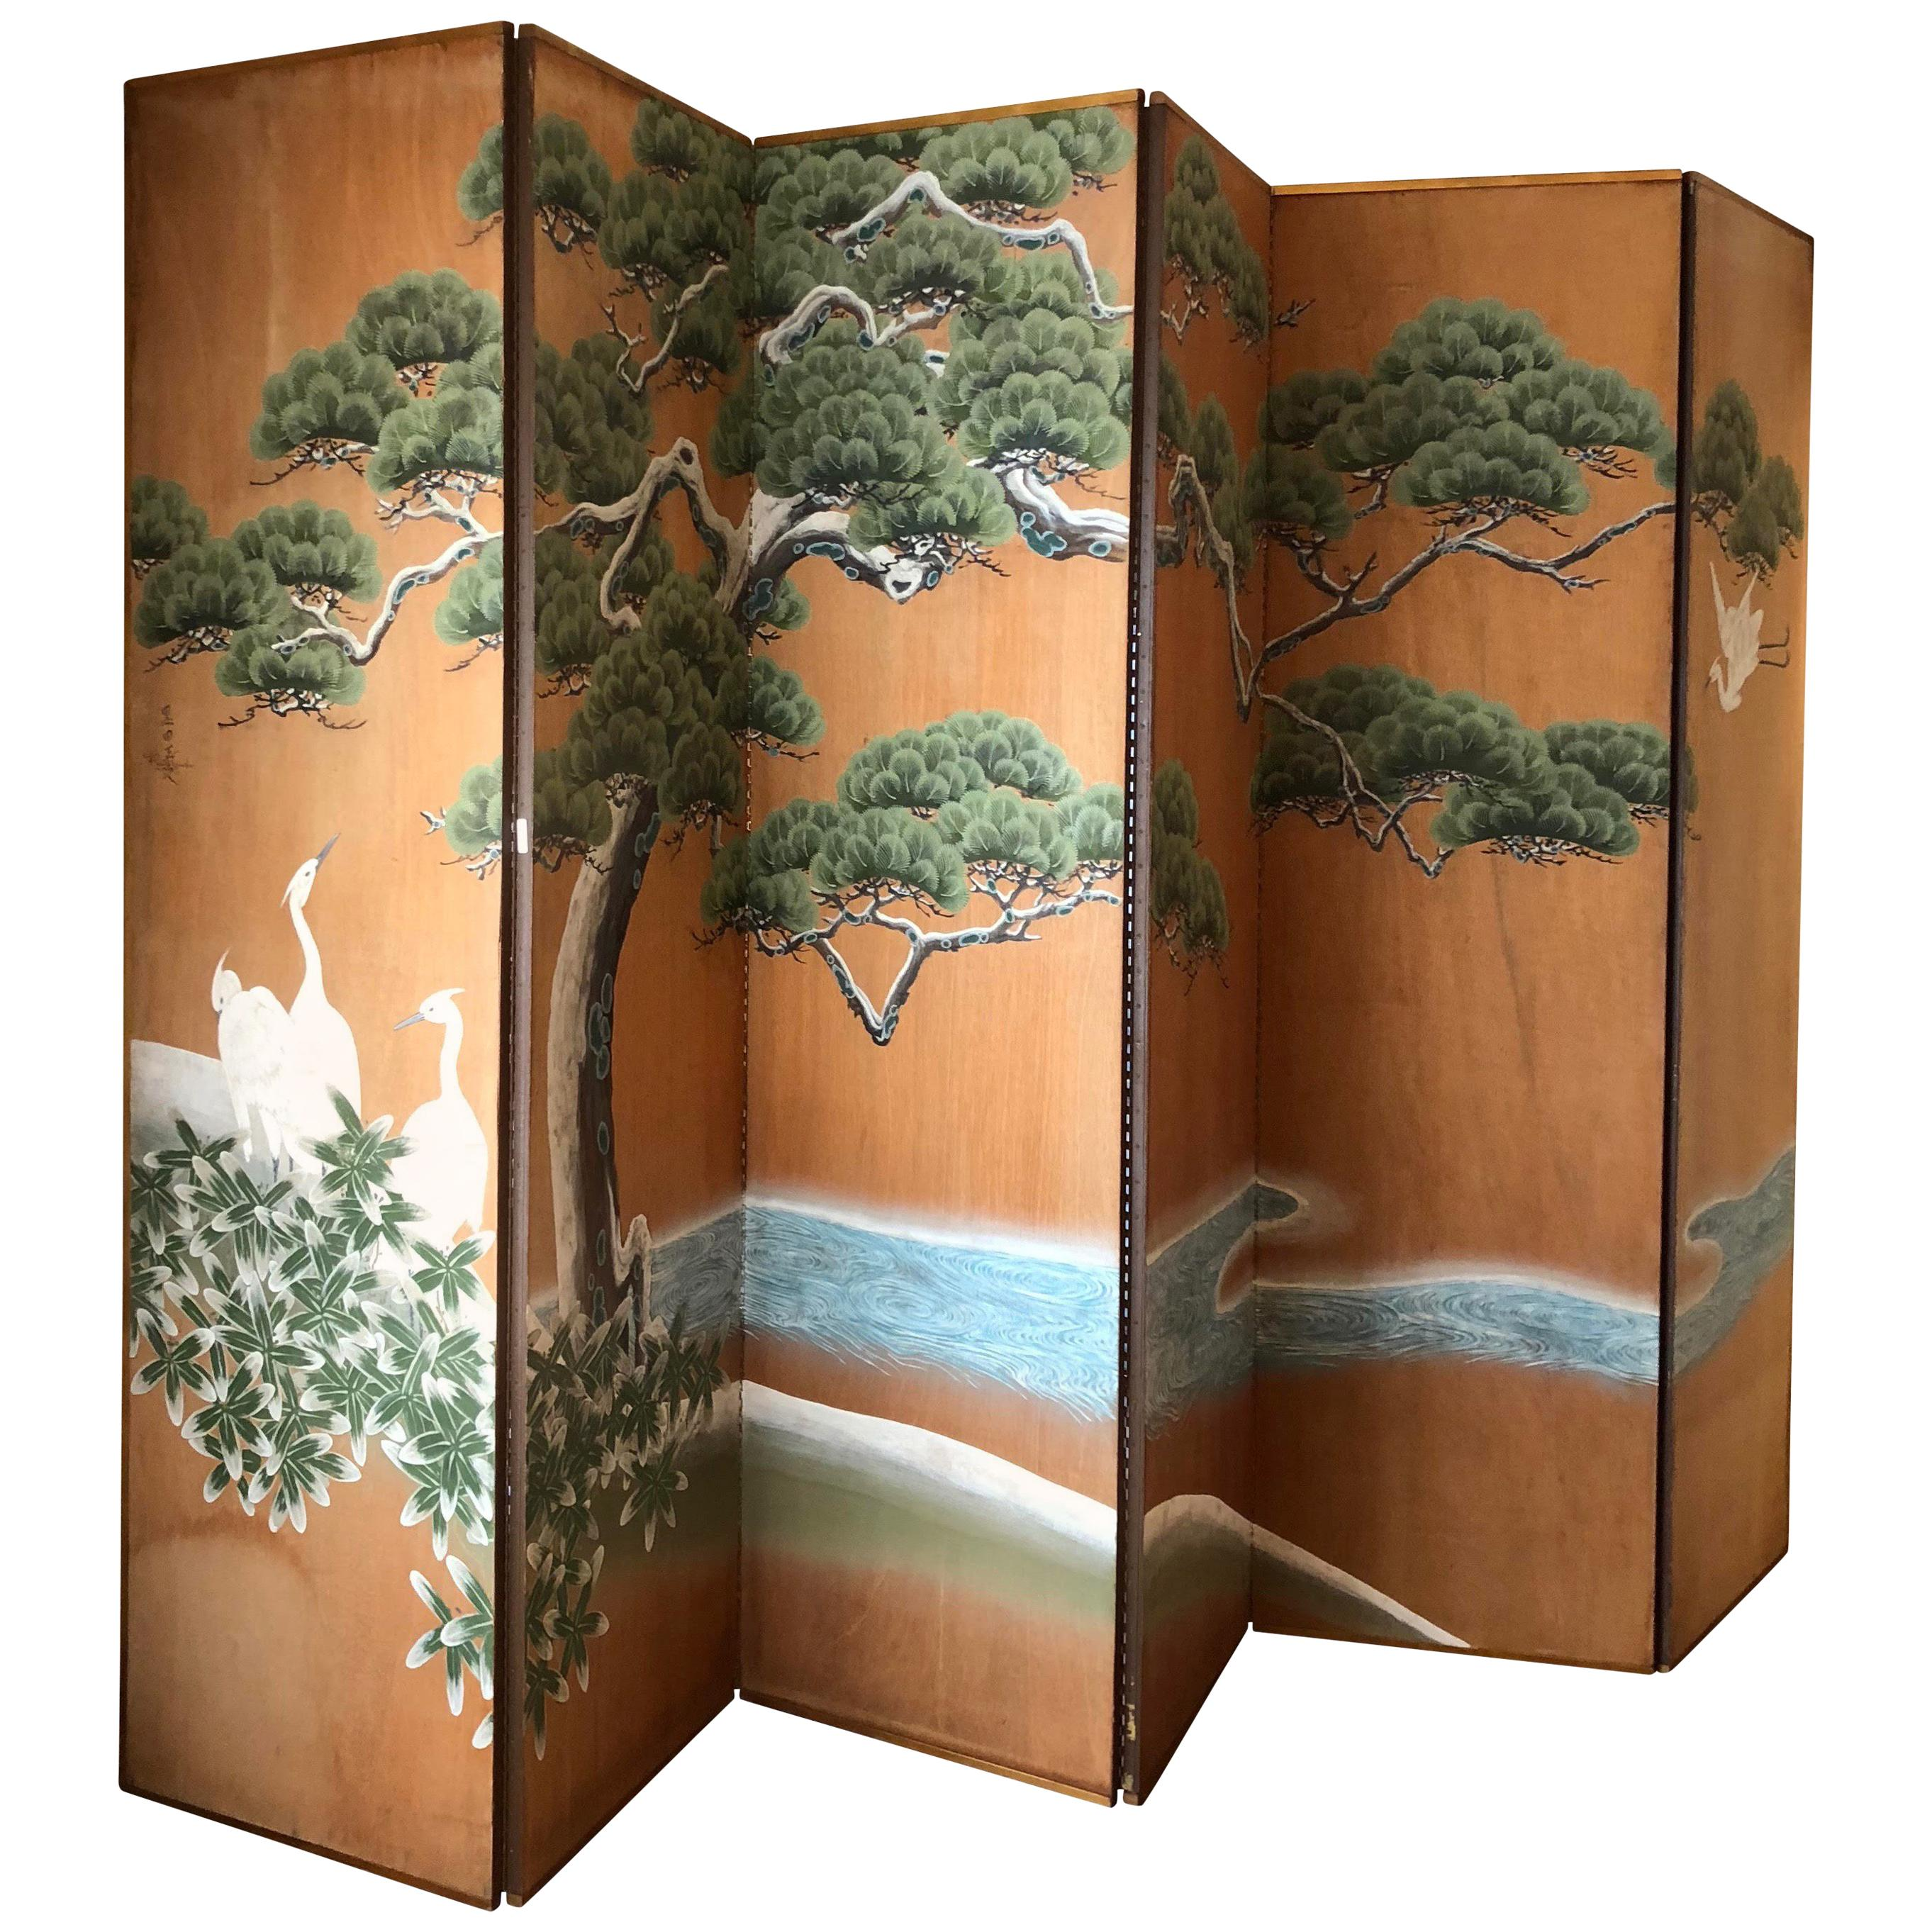 Hand-Painted Japanese Inspired Screen by Artist Robert Crowder